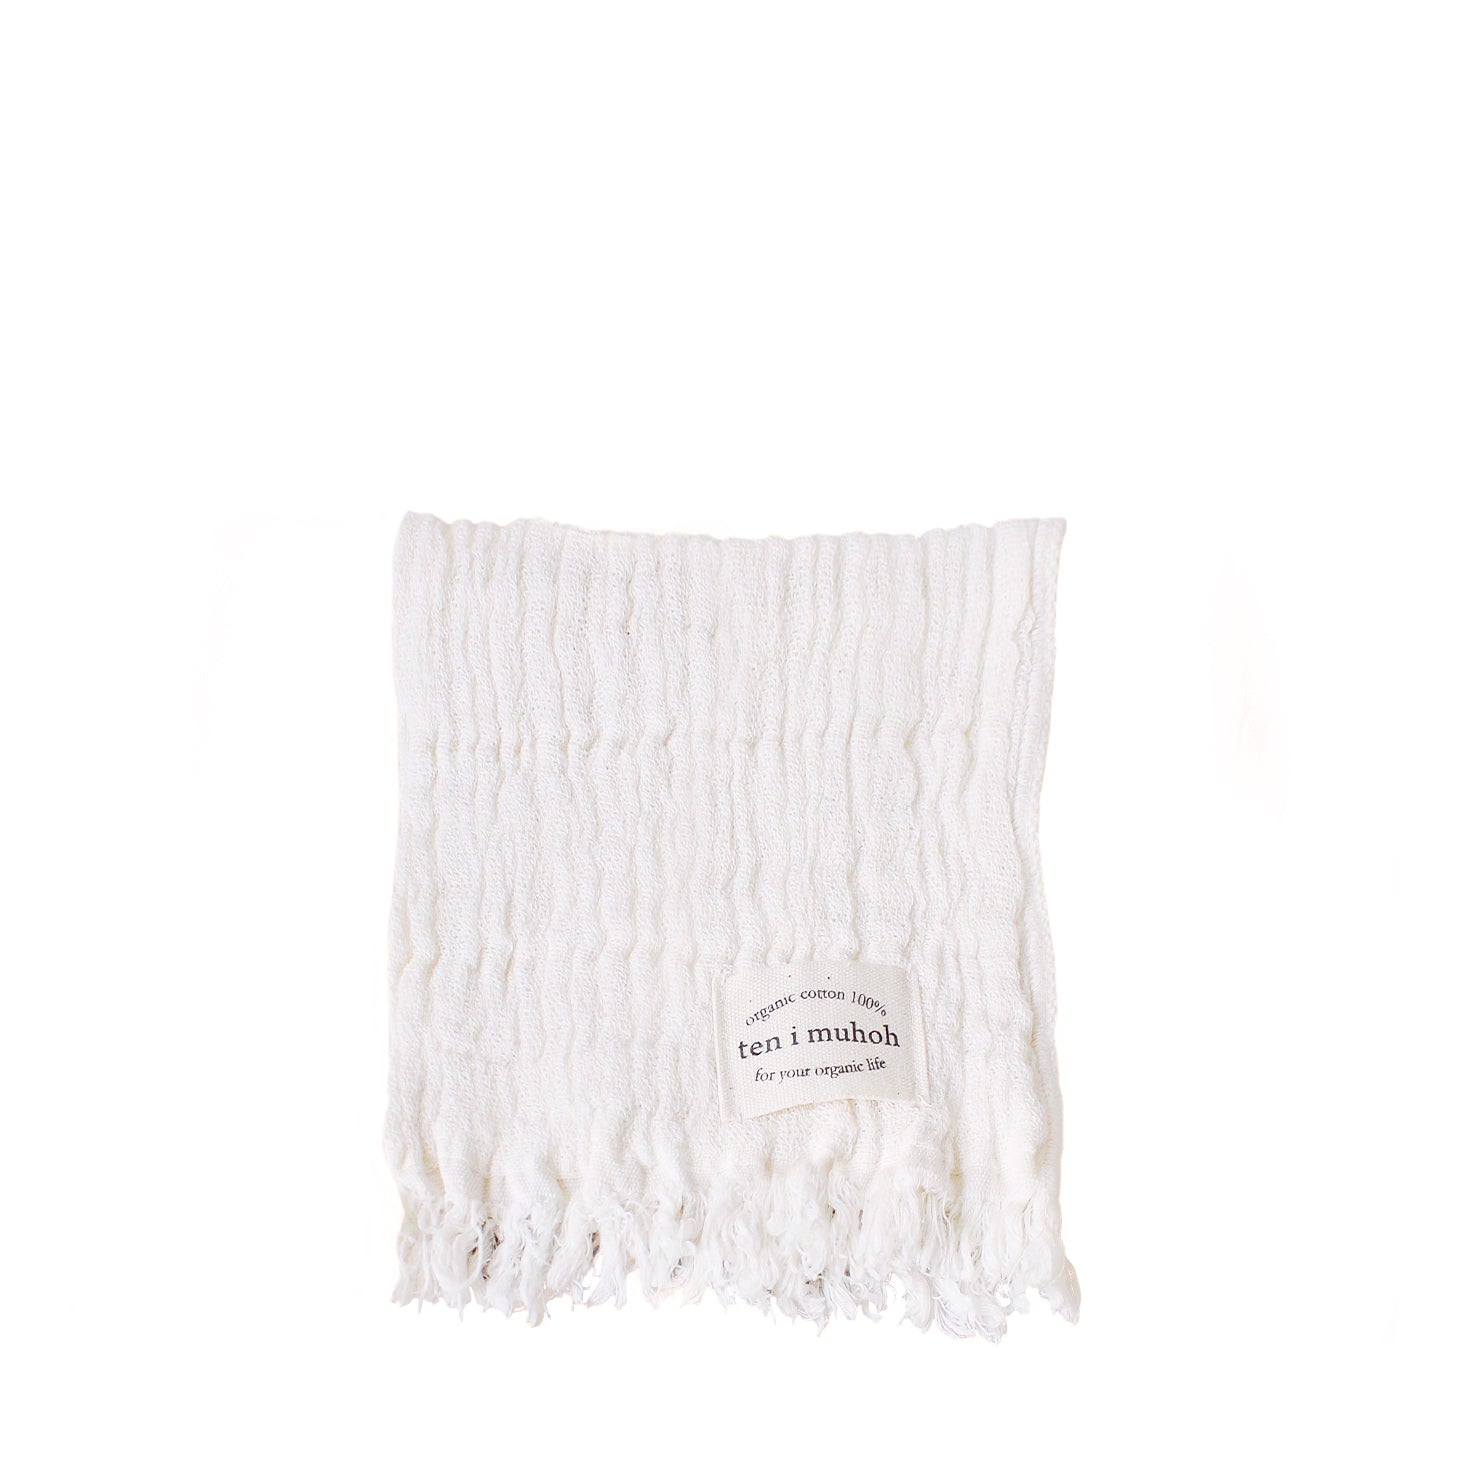 Ten i muhoh Muslin Face Cloth - Natural